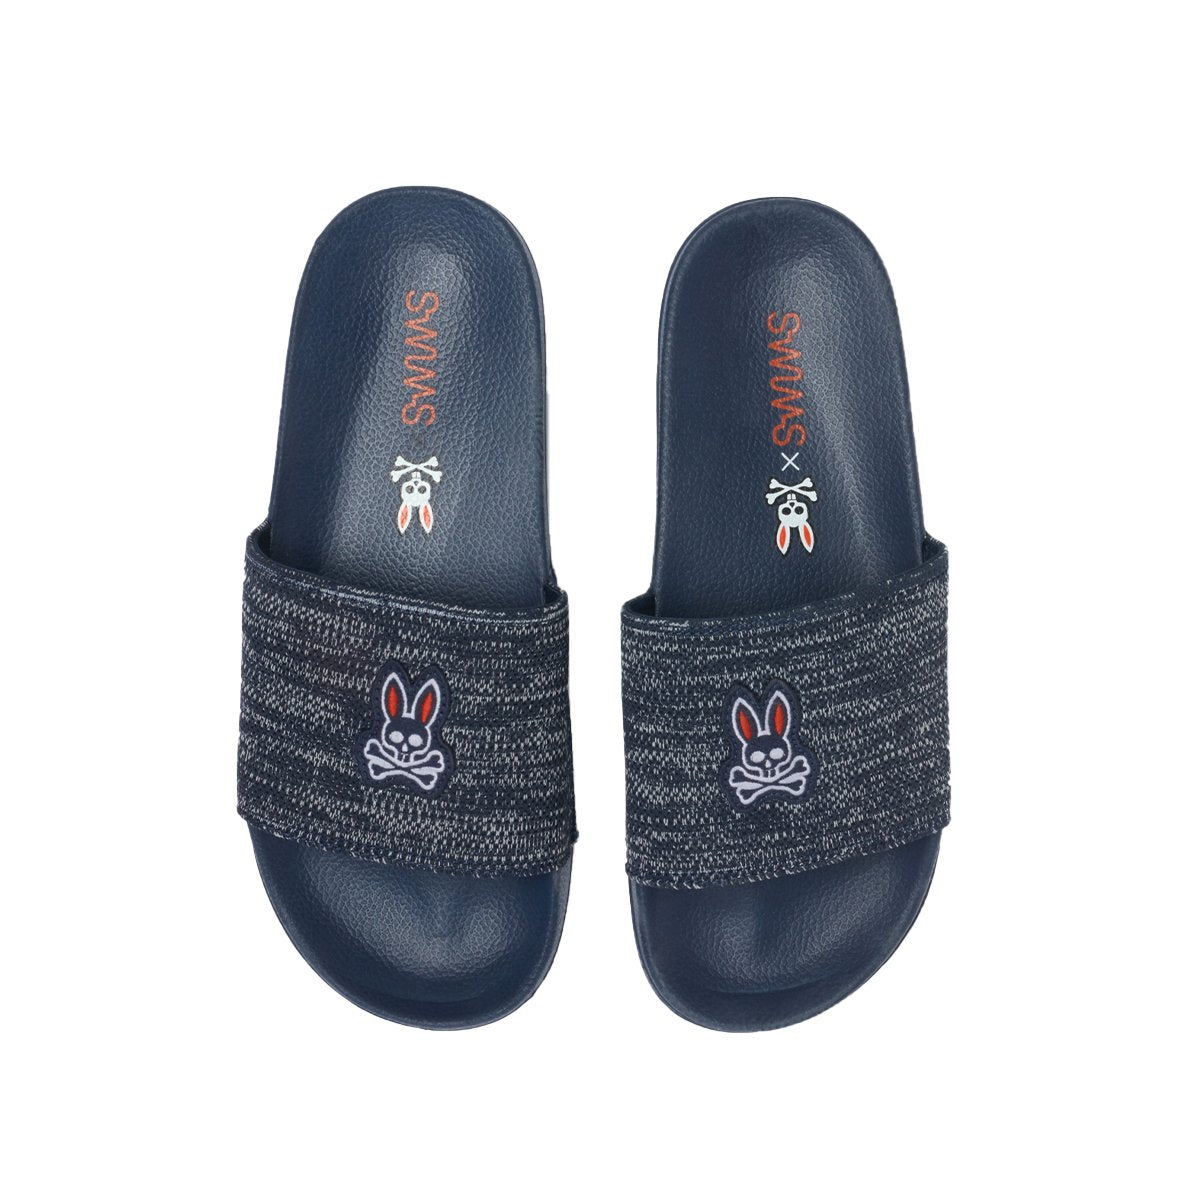 Psycho Bunny x SWIMS Pool Slide - background::white,variant::navy